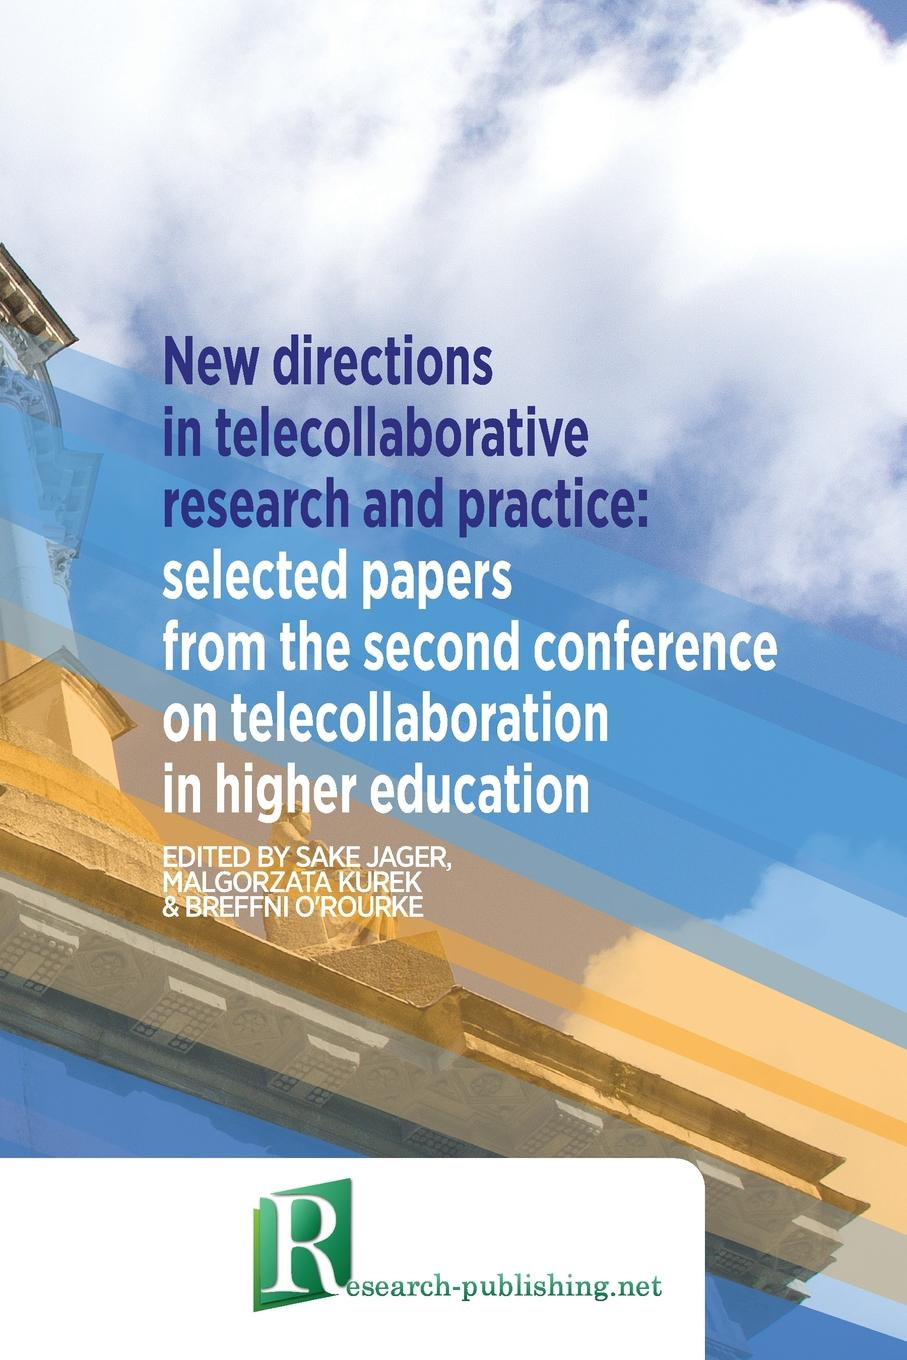 New directions in telecollaborative research and practice. selected papers from the second conference on telecollaboration in higher education (8325)